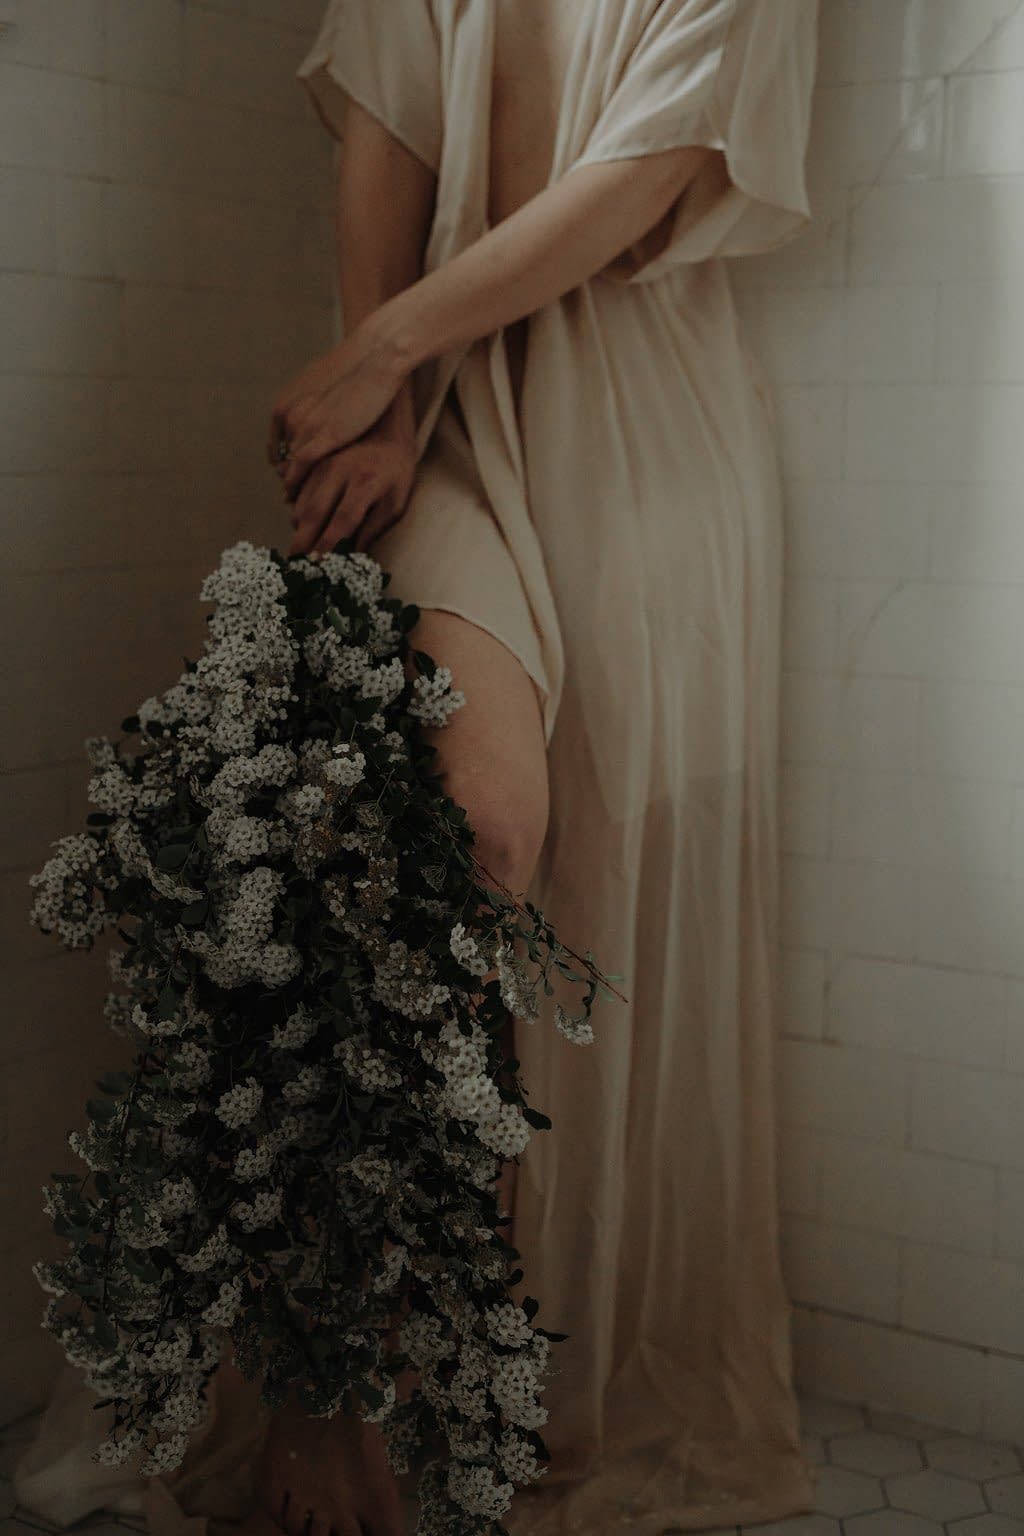 Intimate artful modern spring micro wedding bridal bouquet held by bride wearing lingerie featuring May flowering branches of spirea in green and white palette by Nectar and Root, Vermont wedding florist at the Inn at Shelburne Farms in Shelburne, Vermont.